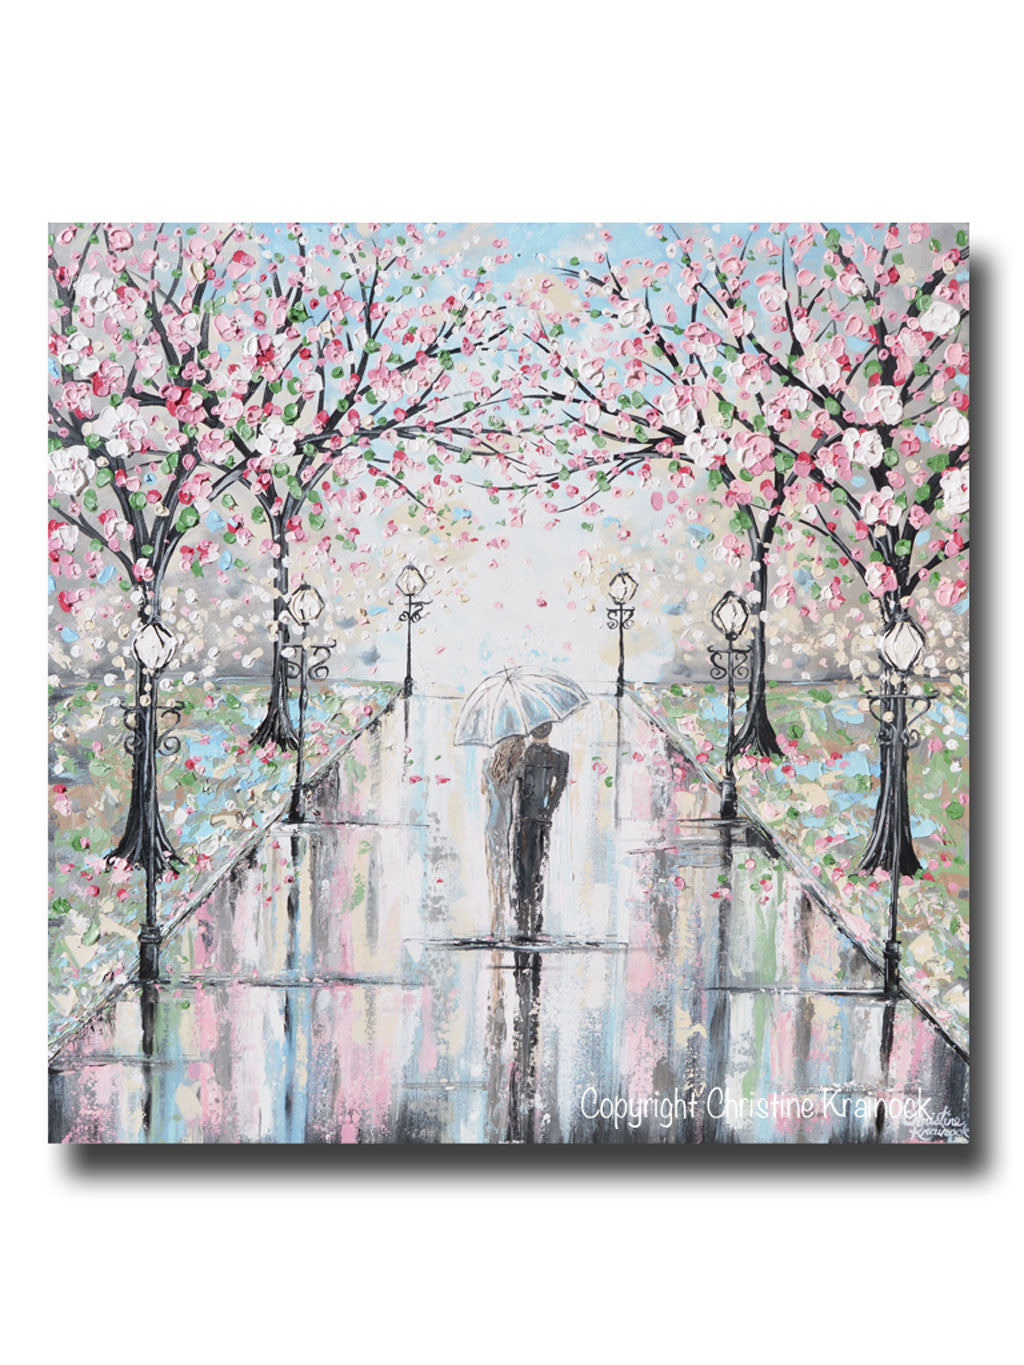 GICLEE PRINT Art Abstract Painting Couple Umbrella Walk Rain Pink Cherry Trees White Grey Wall Decor  sc 1 st  Contemporary Art by Christine & GICLEE PRINT Art Painting Couple Umbrella Rain Pink Cherry Trees ...